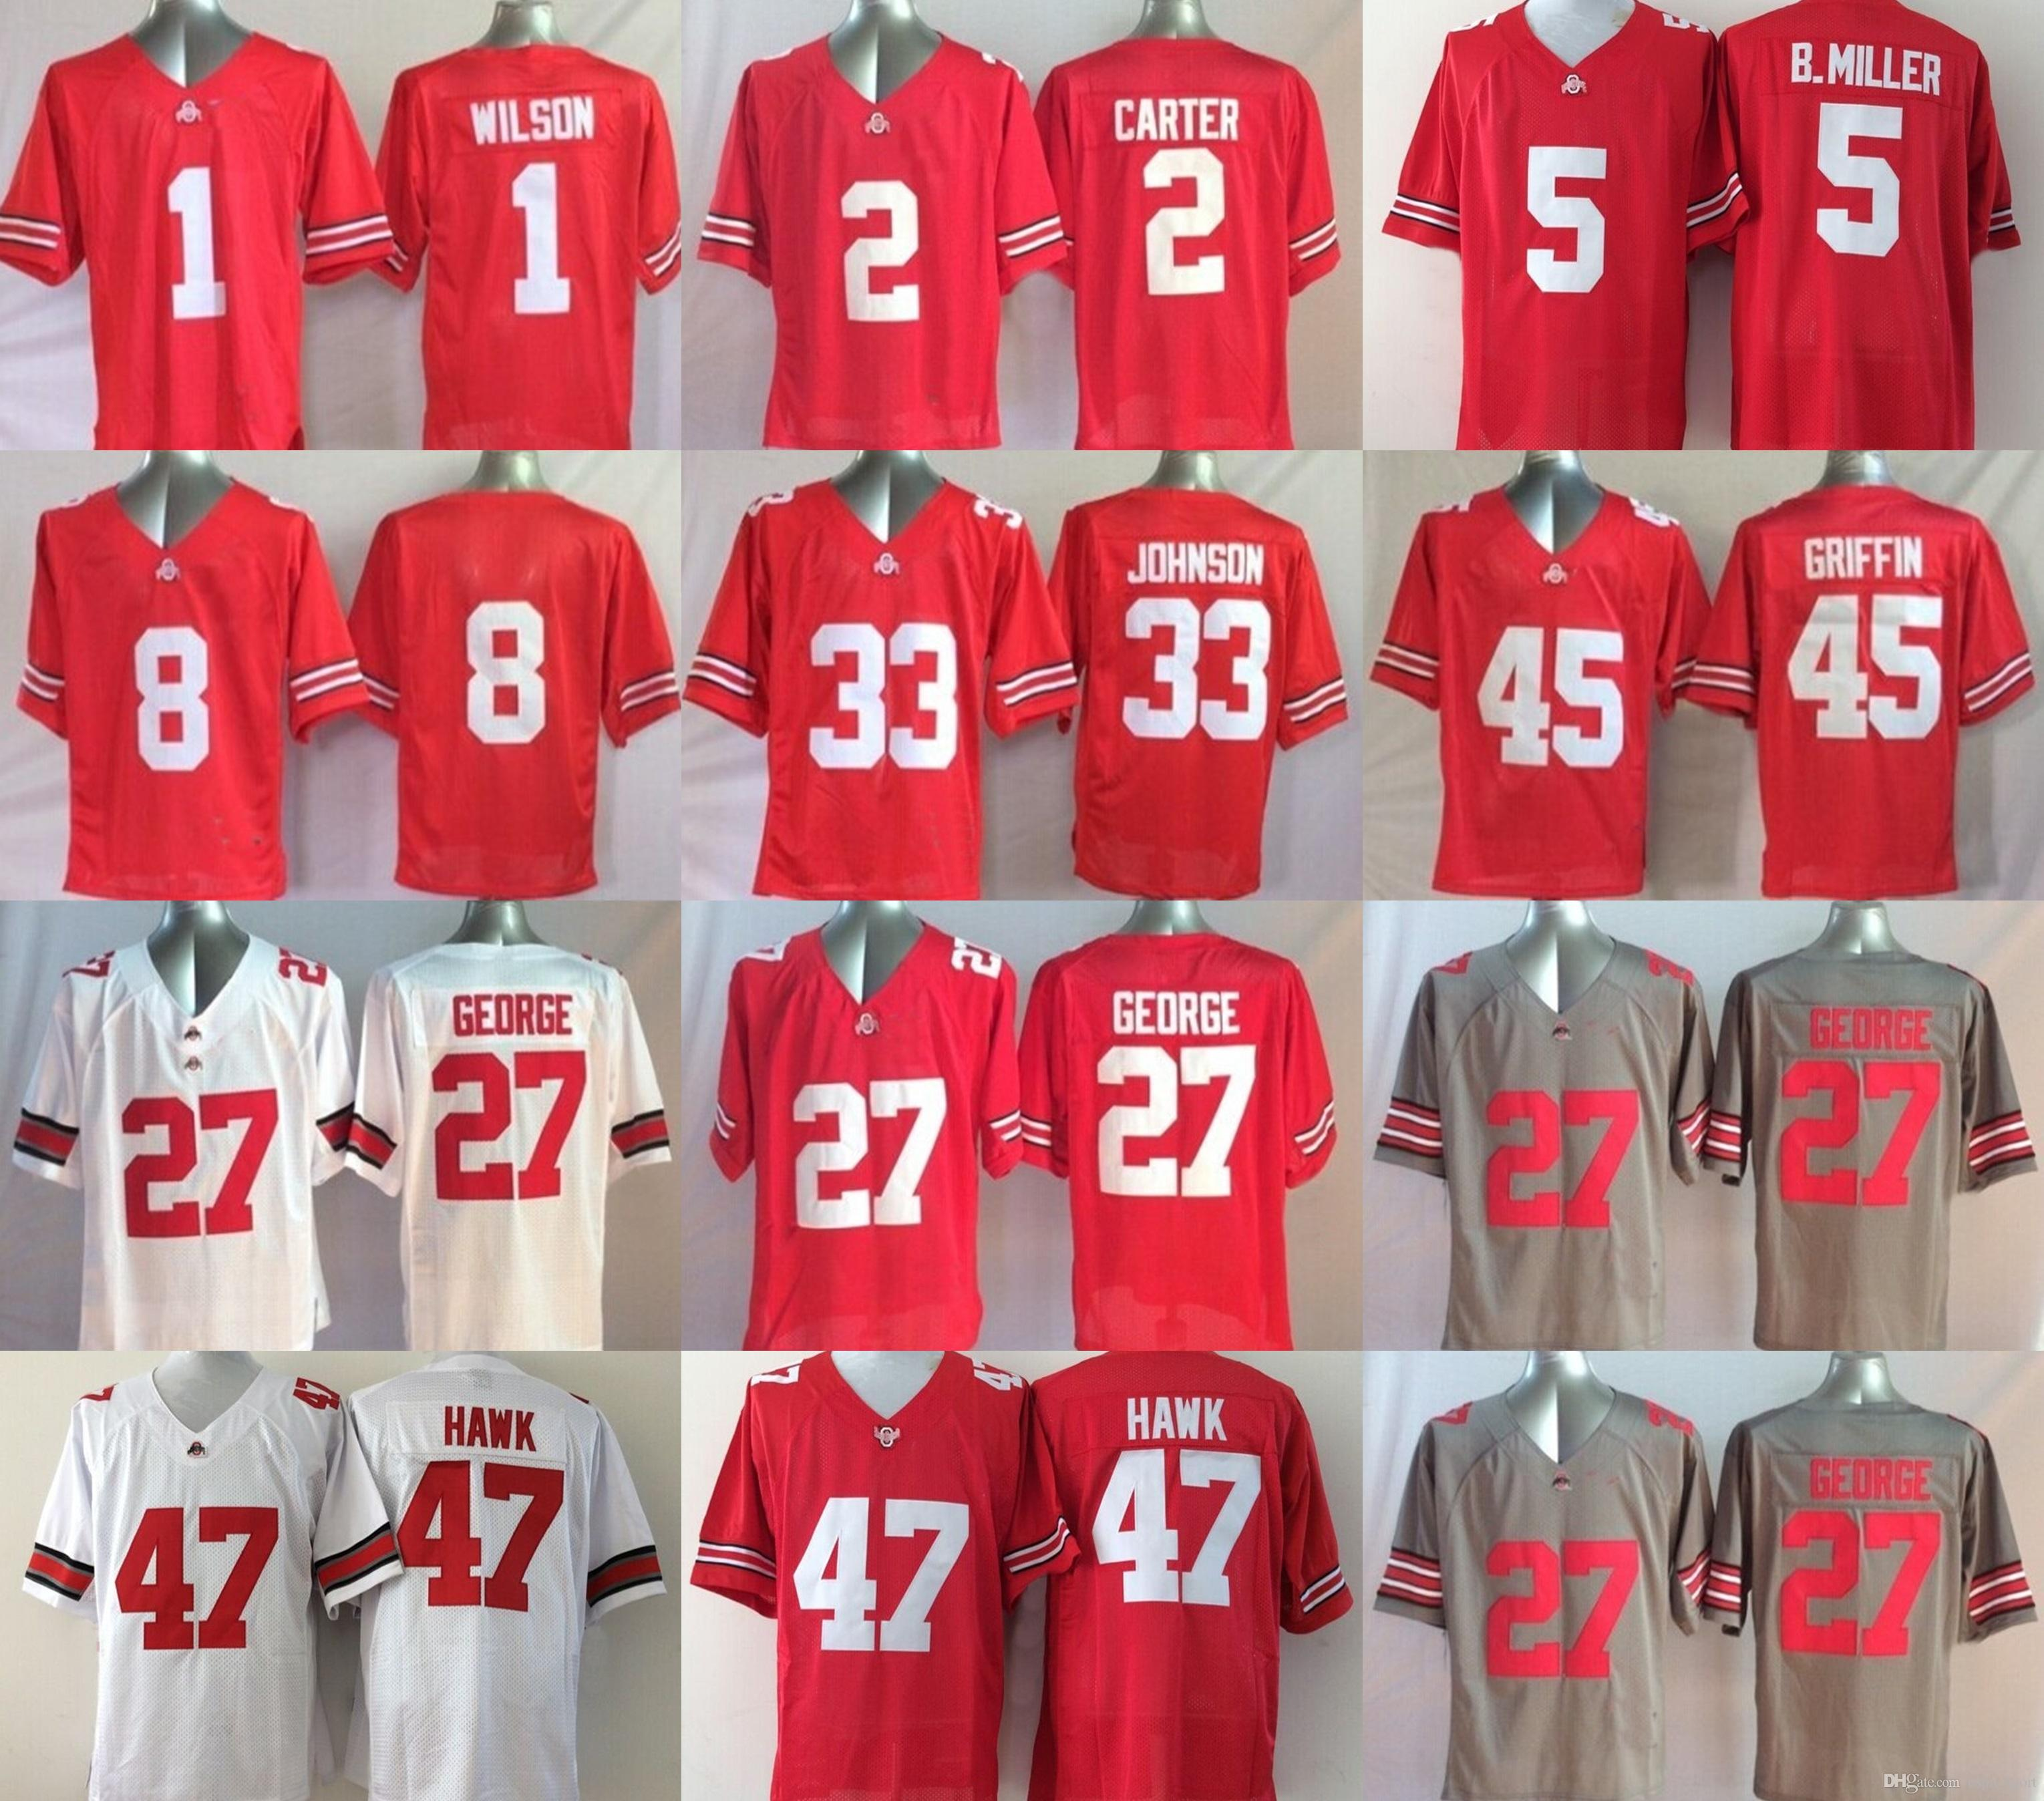 NCAA Ohio State Buckeyes 1 WILSON 27 GEORGE 2 CARTER 33 JOHNSON 45 GRIFFIN  5 B.MILLER 47 HAWK College Men Football Jerseys High Quality Jerseys Ohio  State ... e186444c6